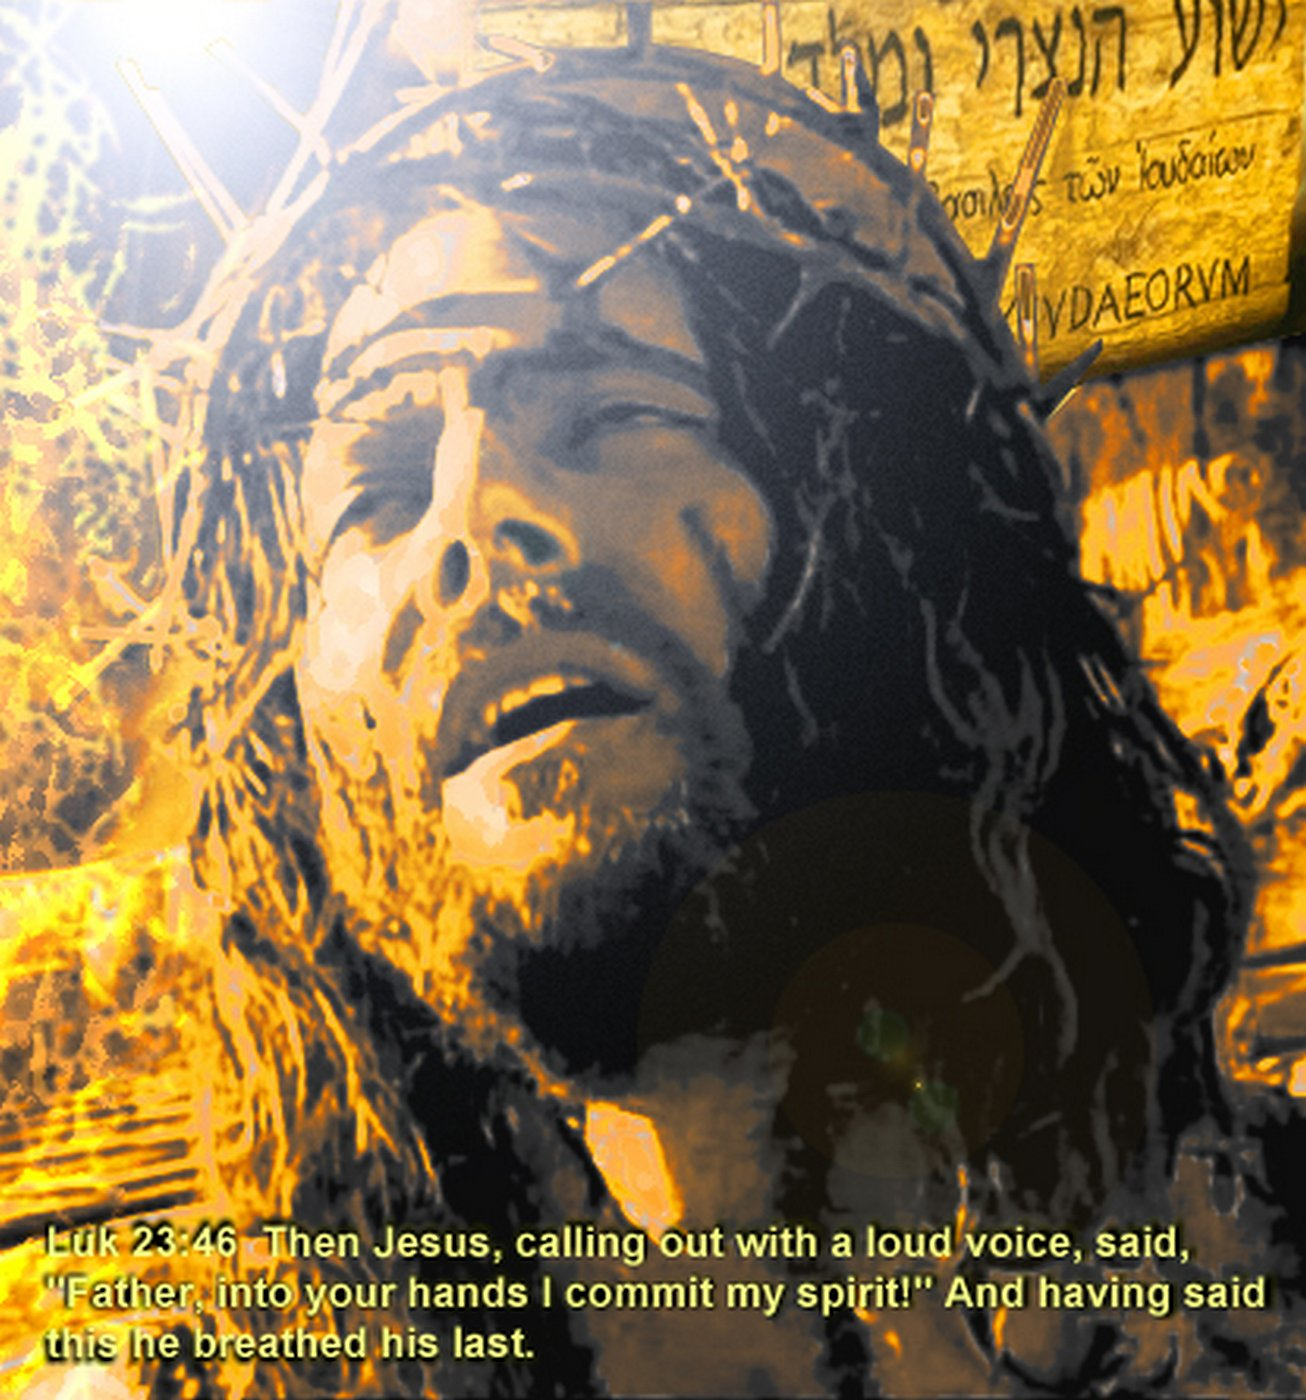 Then Jesus, calling out with a loud voice, said, 'Father, into your hands I commit my spirit!'